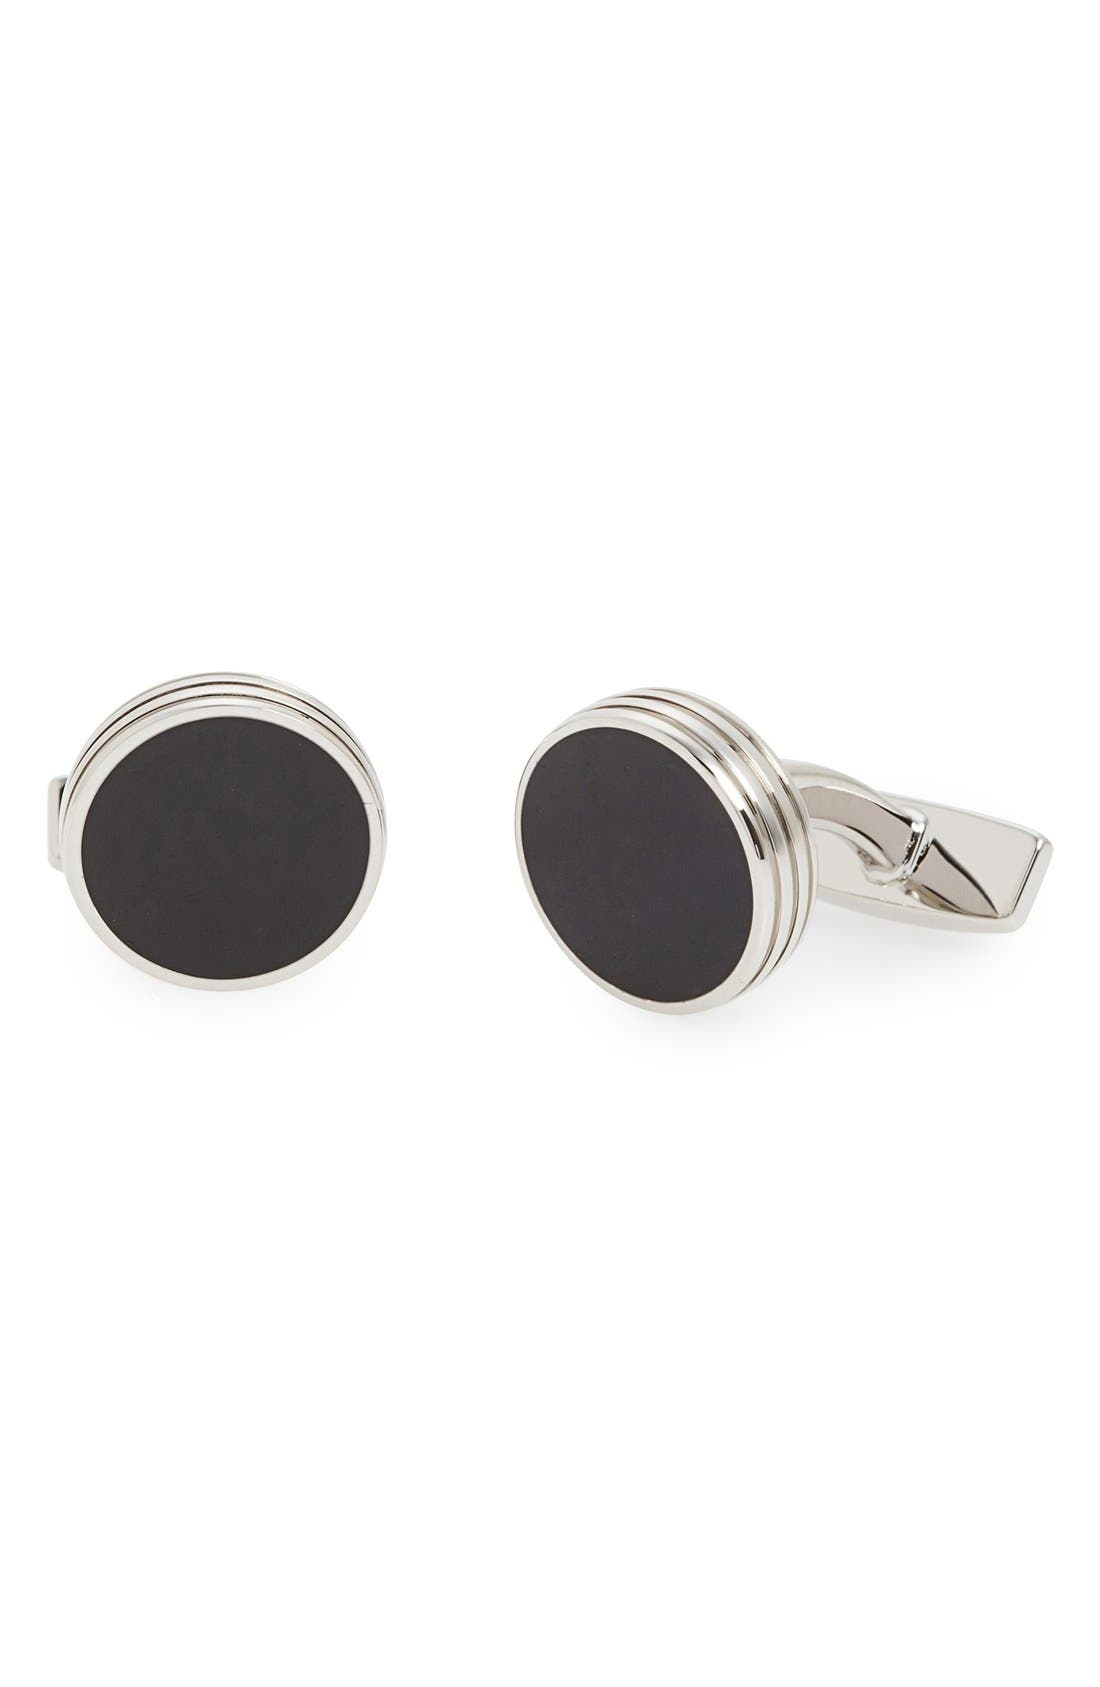 BOSS 'Roy' Cuff Links